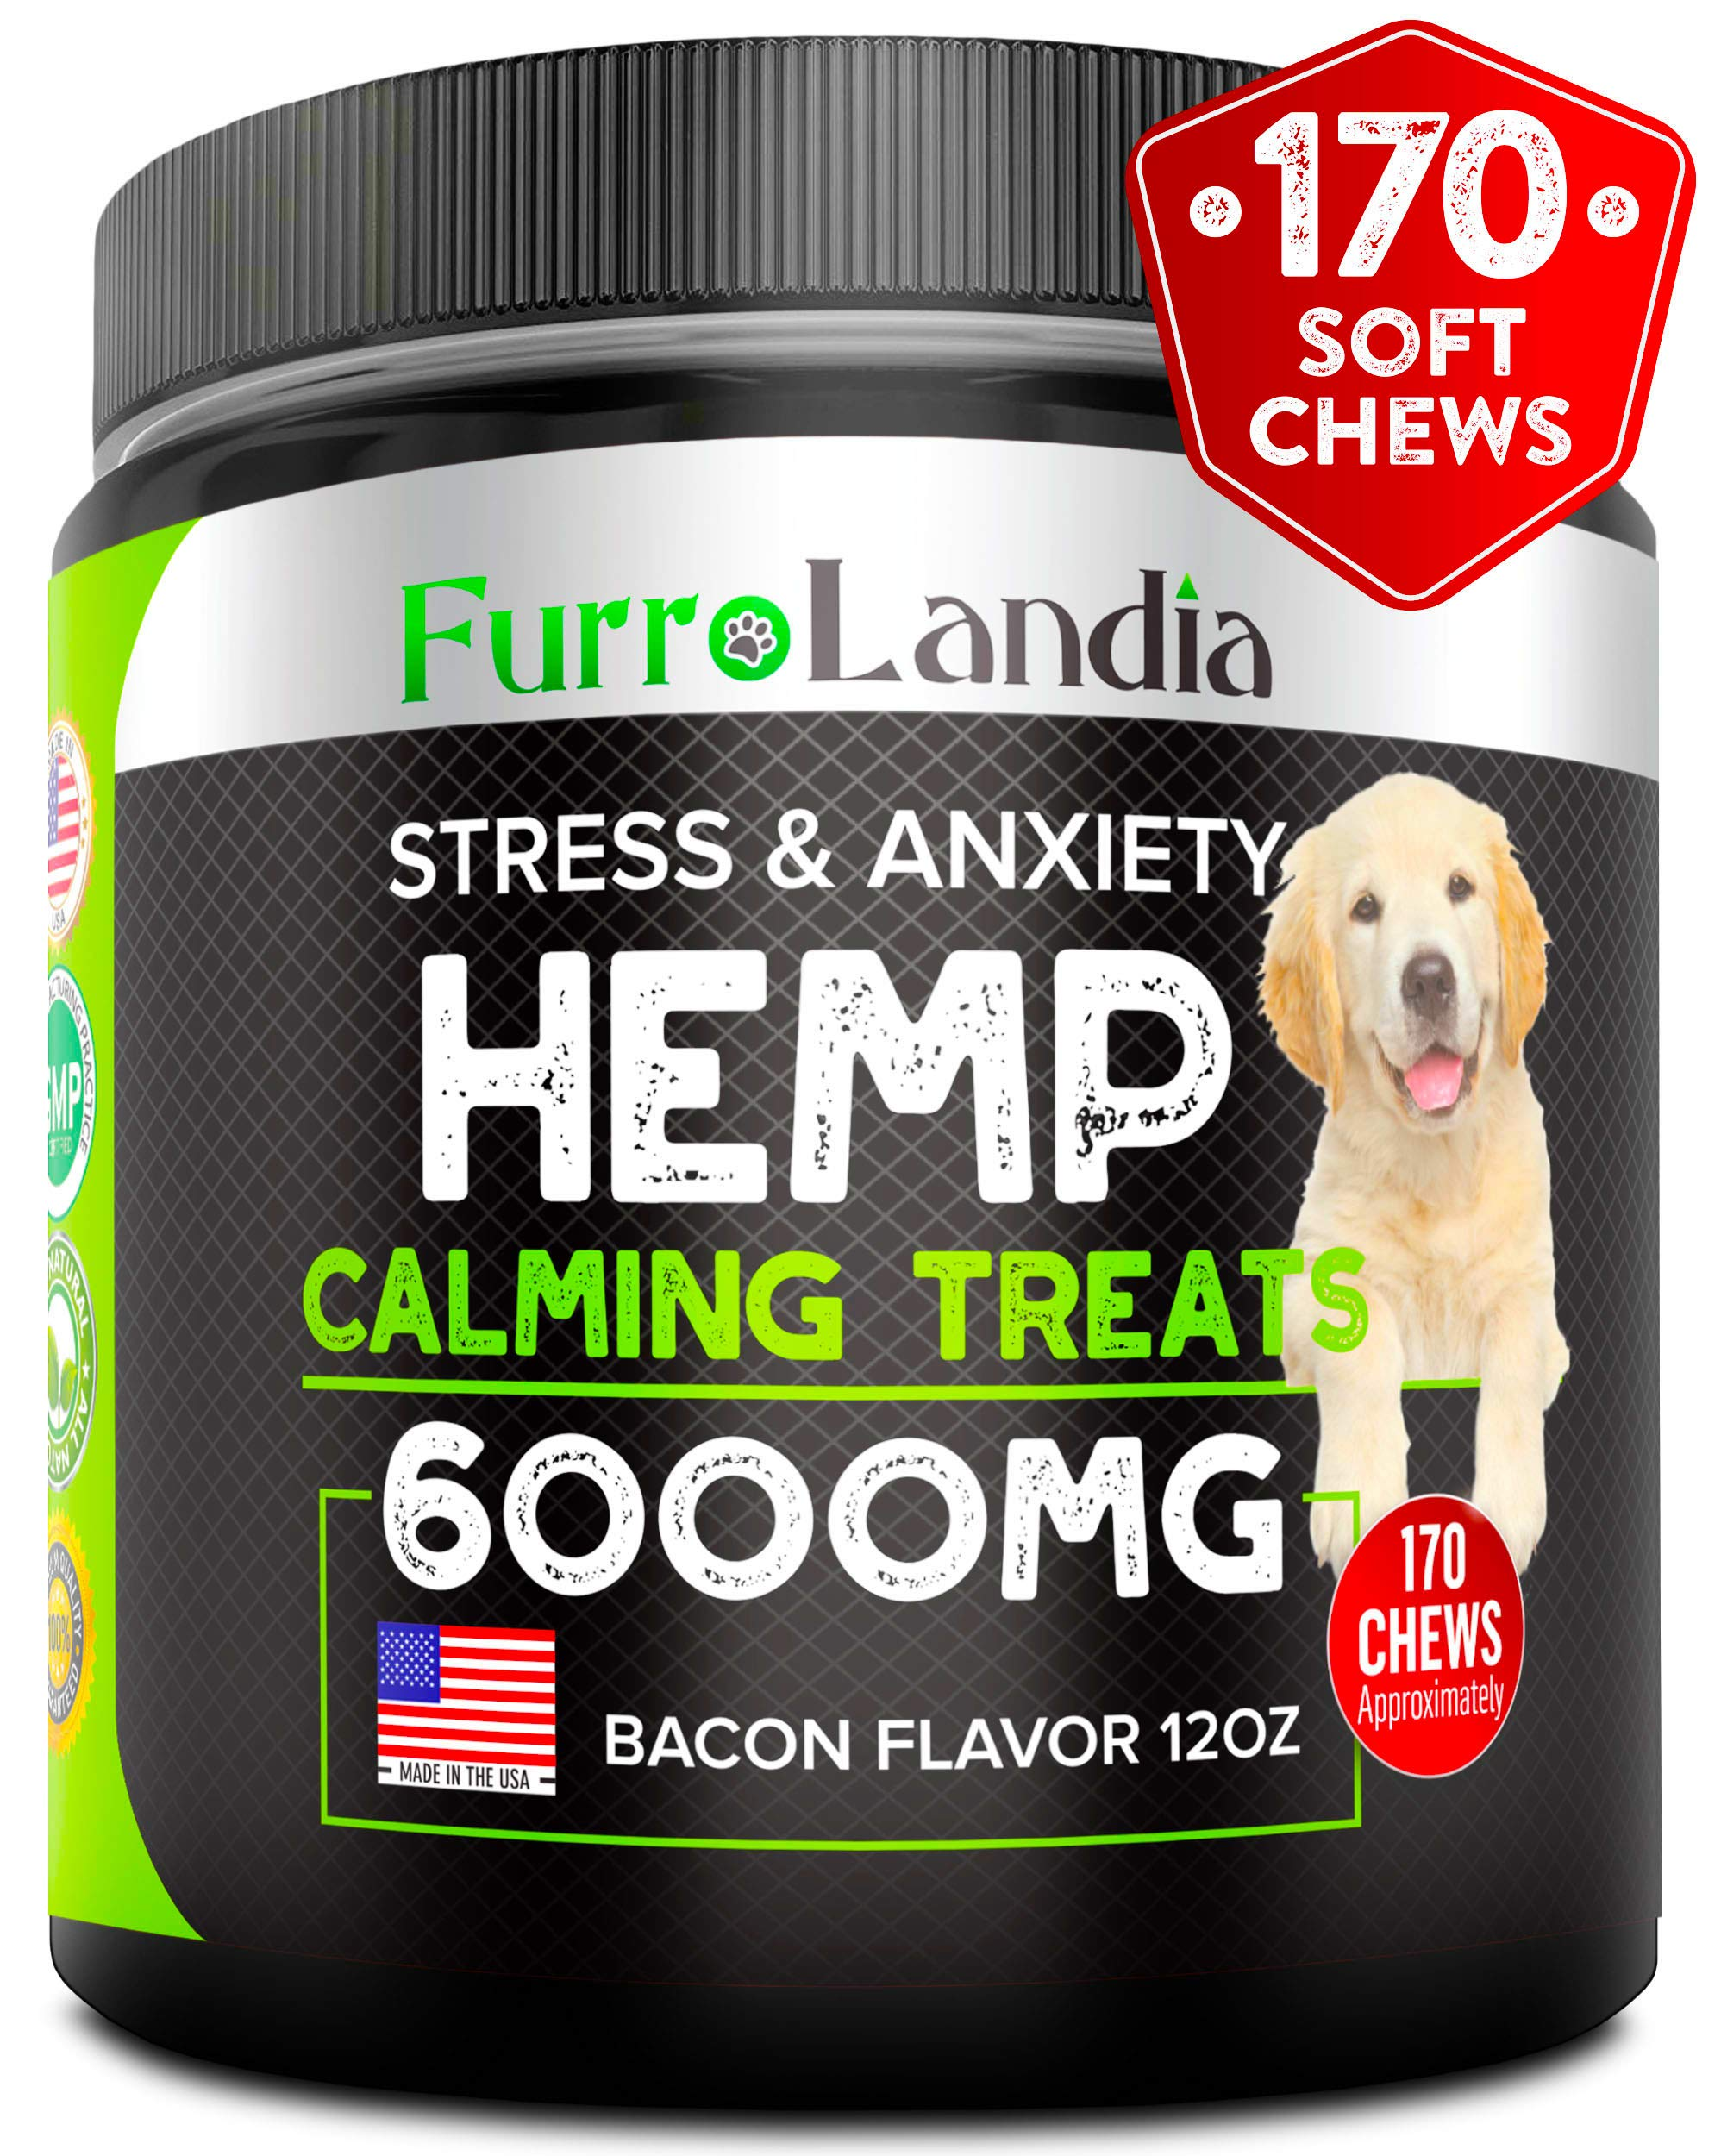 FurroLandia-Hemp-Calming-Treats-for-Dogs-170-Soft-Chews-Made-in-USA-Hemp-Oil-for-Dogs-Dog-Anxiety-Relief-Natural-Calming-Aid-Stress-Fireworks-Storms-Aggressive-Behavior